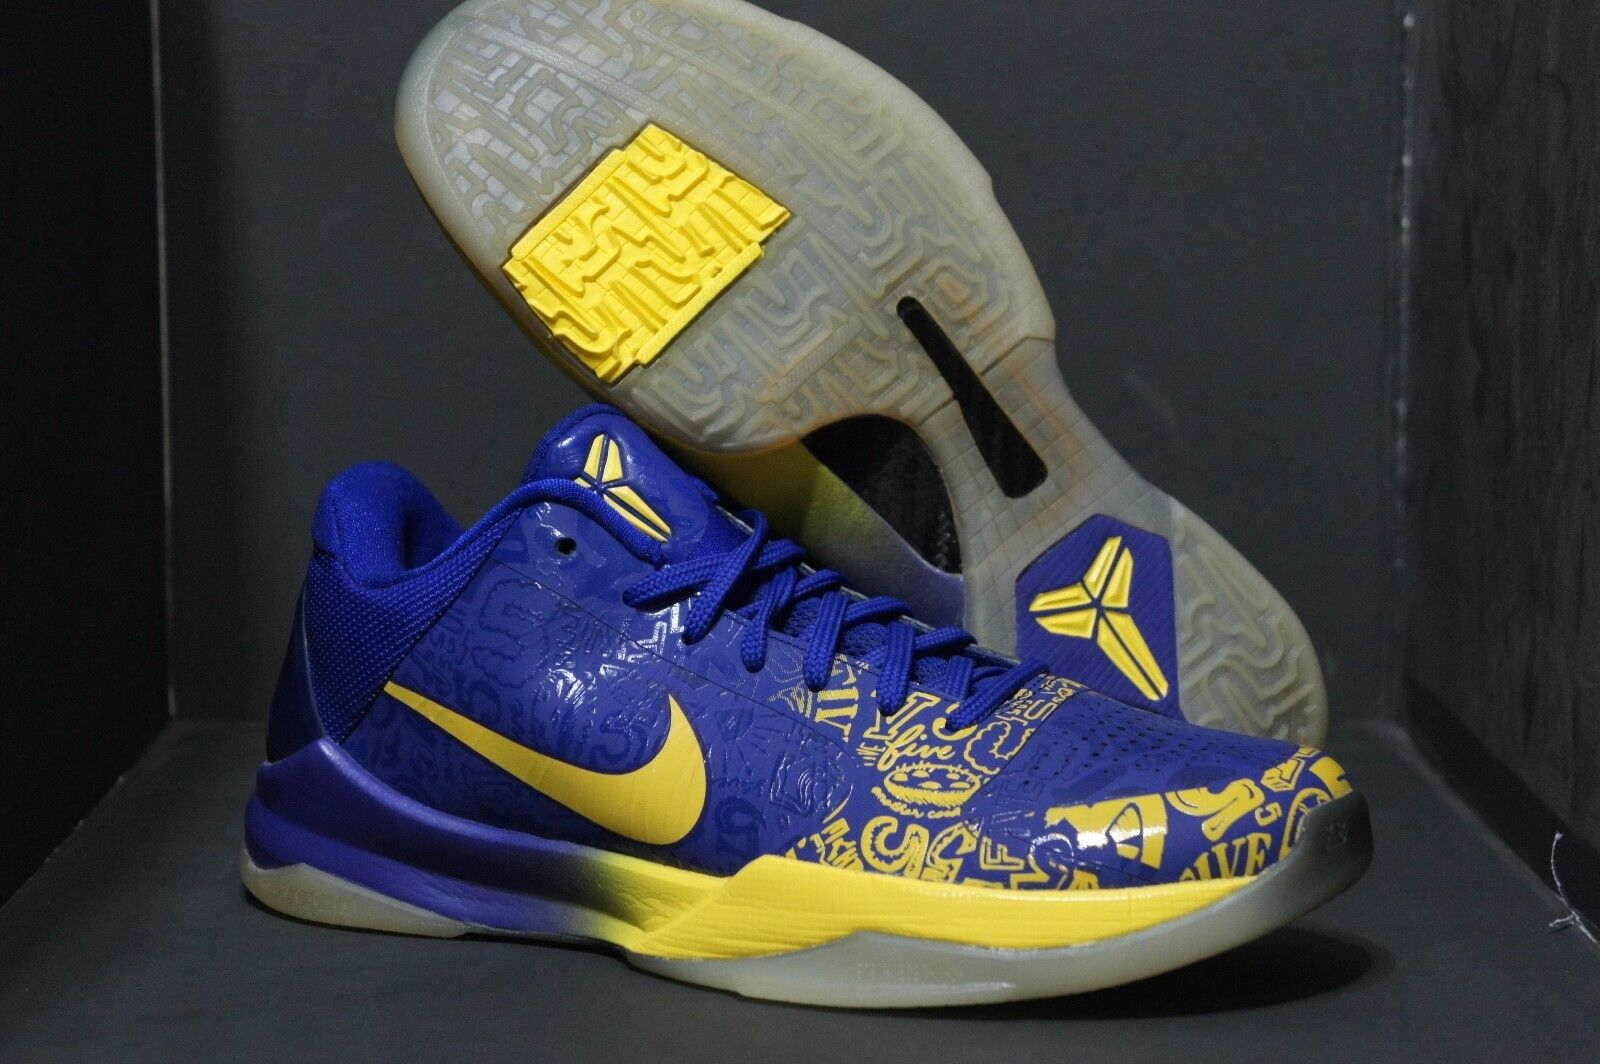 Promo Nike Zoom Kobe V 8 5 Rings Ceremony sz 8 V Purple Yellow 386429-702 MVP 2c43fb